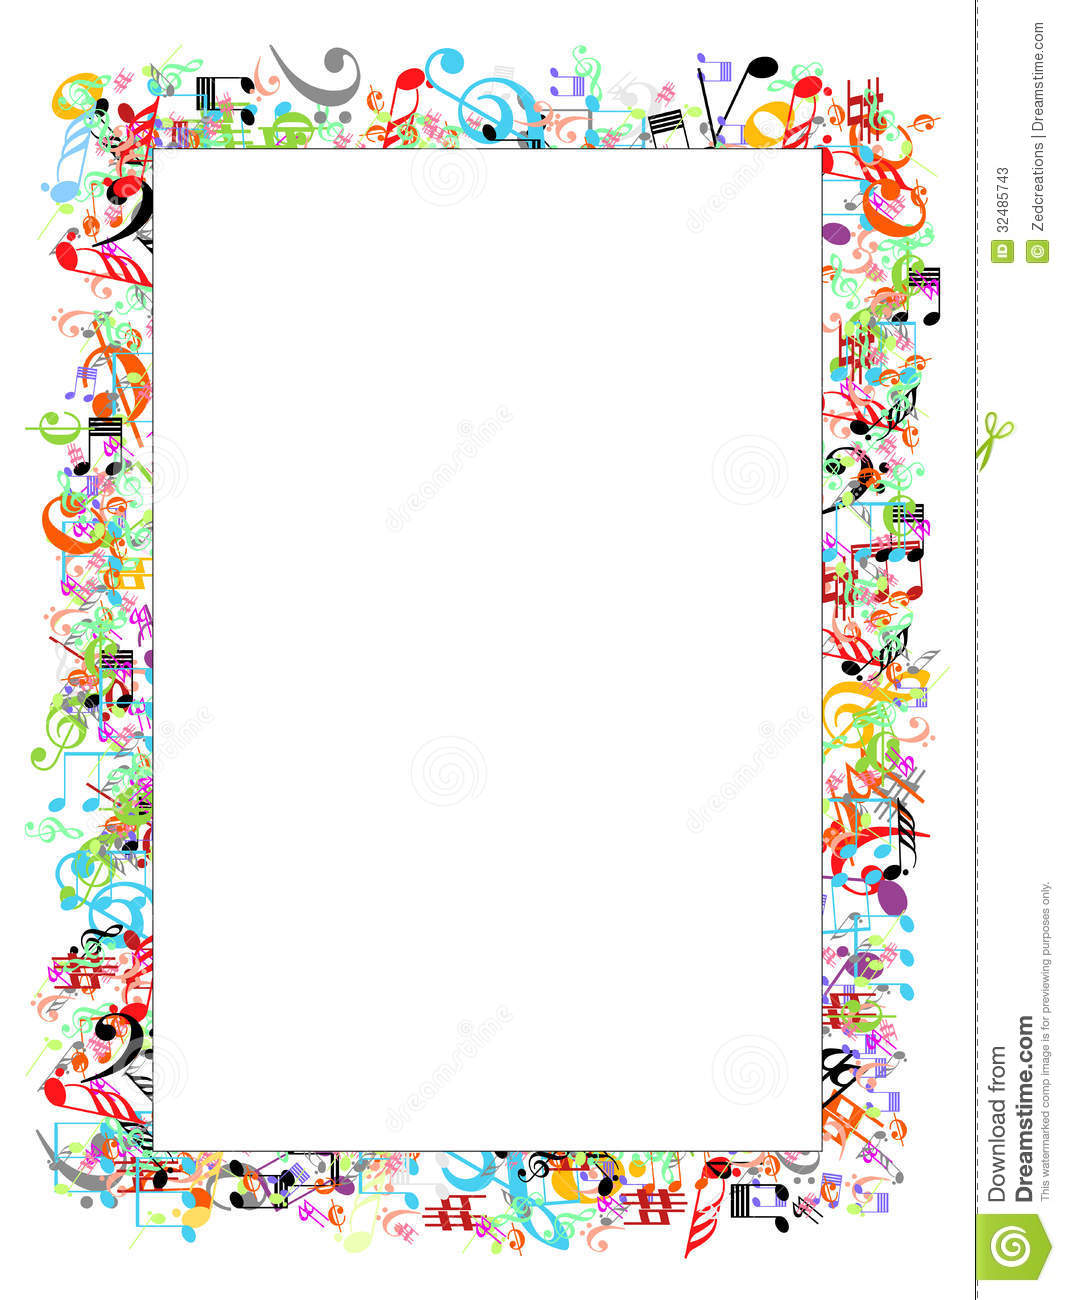 music borders and frames clipart - Clipground